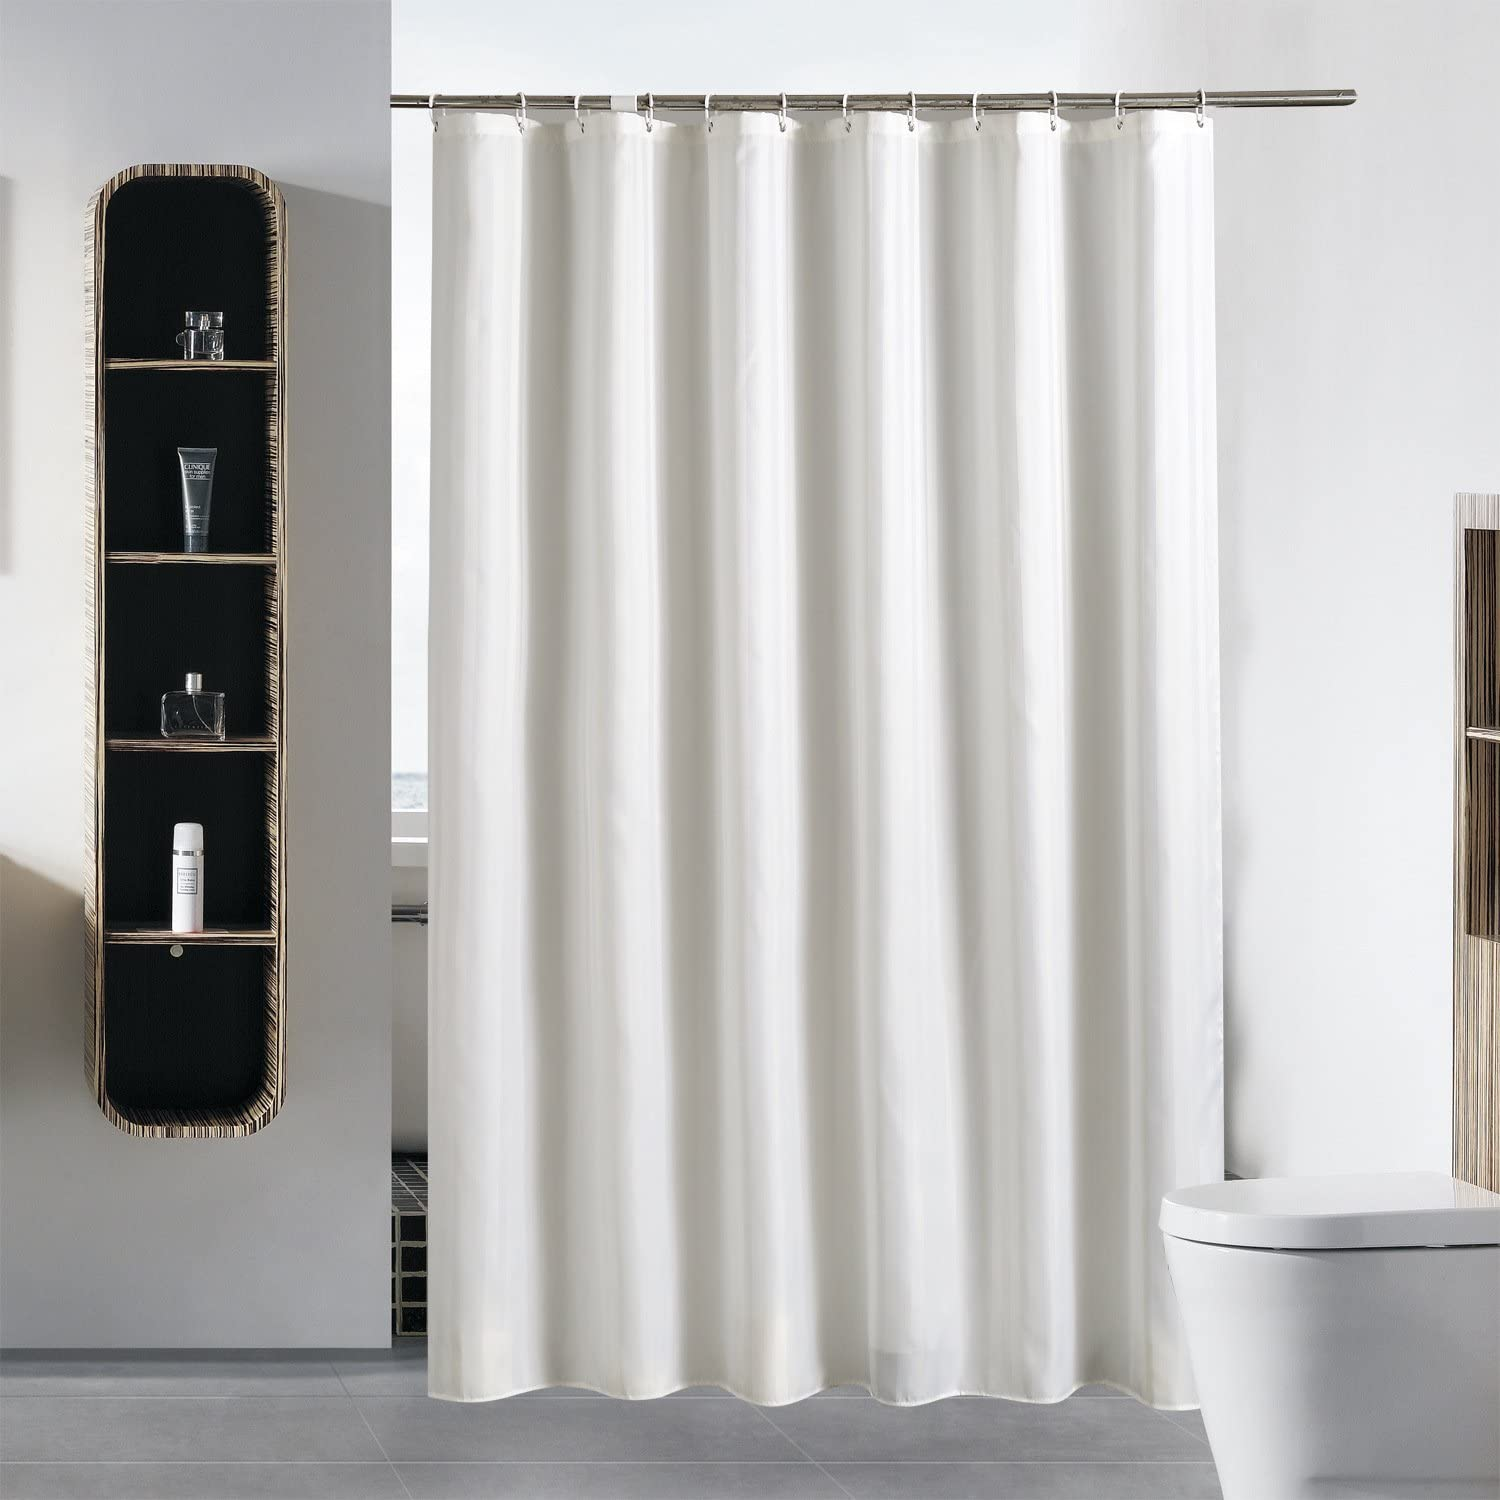 Gonove Shower Curtain with White Plastic Hooks Water Resistant Fabric Extra Long Shower Curtains Liner for Bathroom, Machine Washable and Heavyweight Hem (White, 180 x 180 cm) White 180 x 180 cm